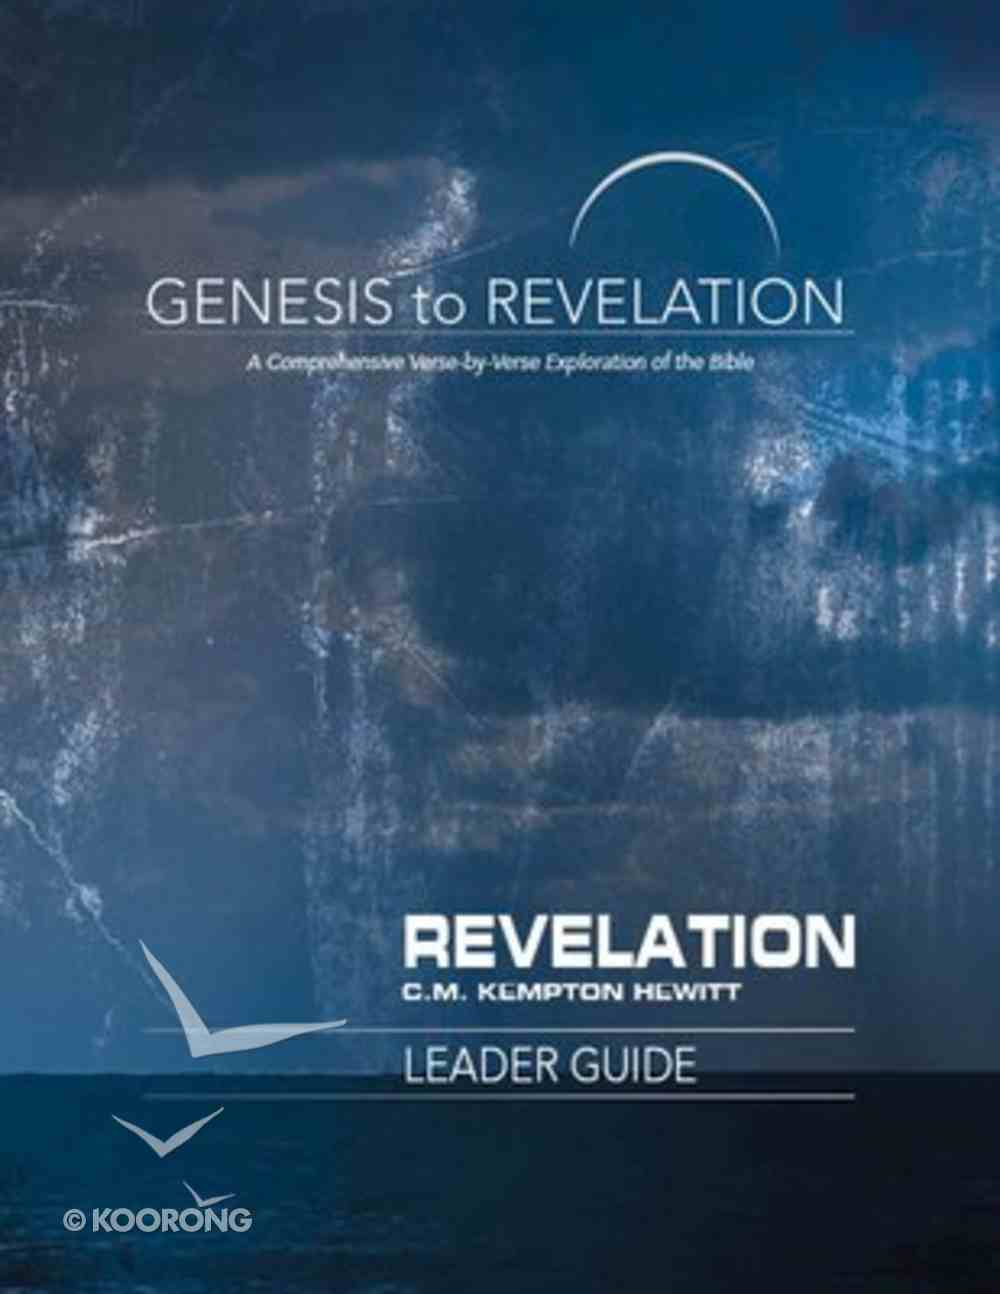 Revelation : A Comprehensive Verse-By-Verse Exploration of the Bible (Leader Guide) (Genesis To Revelation Series) Paperback